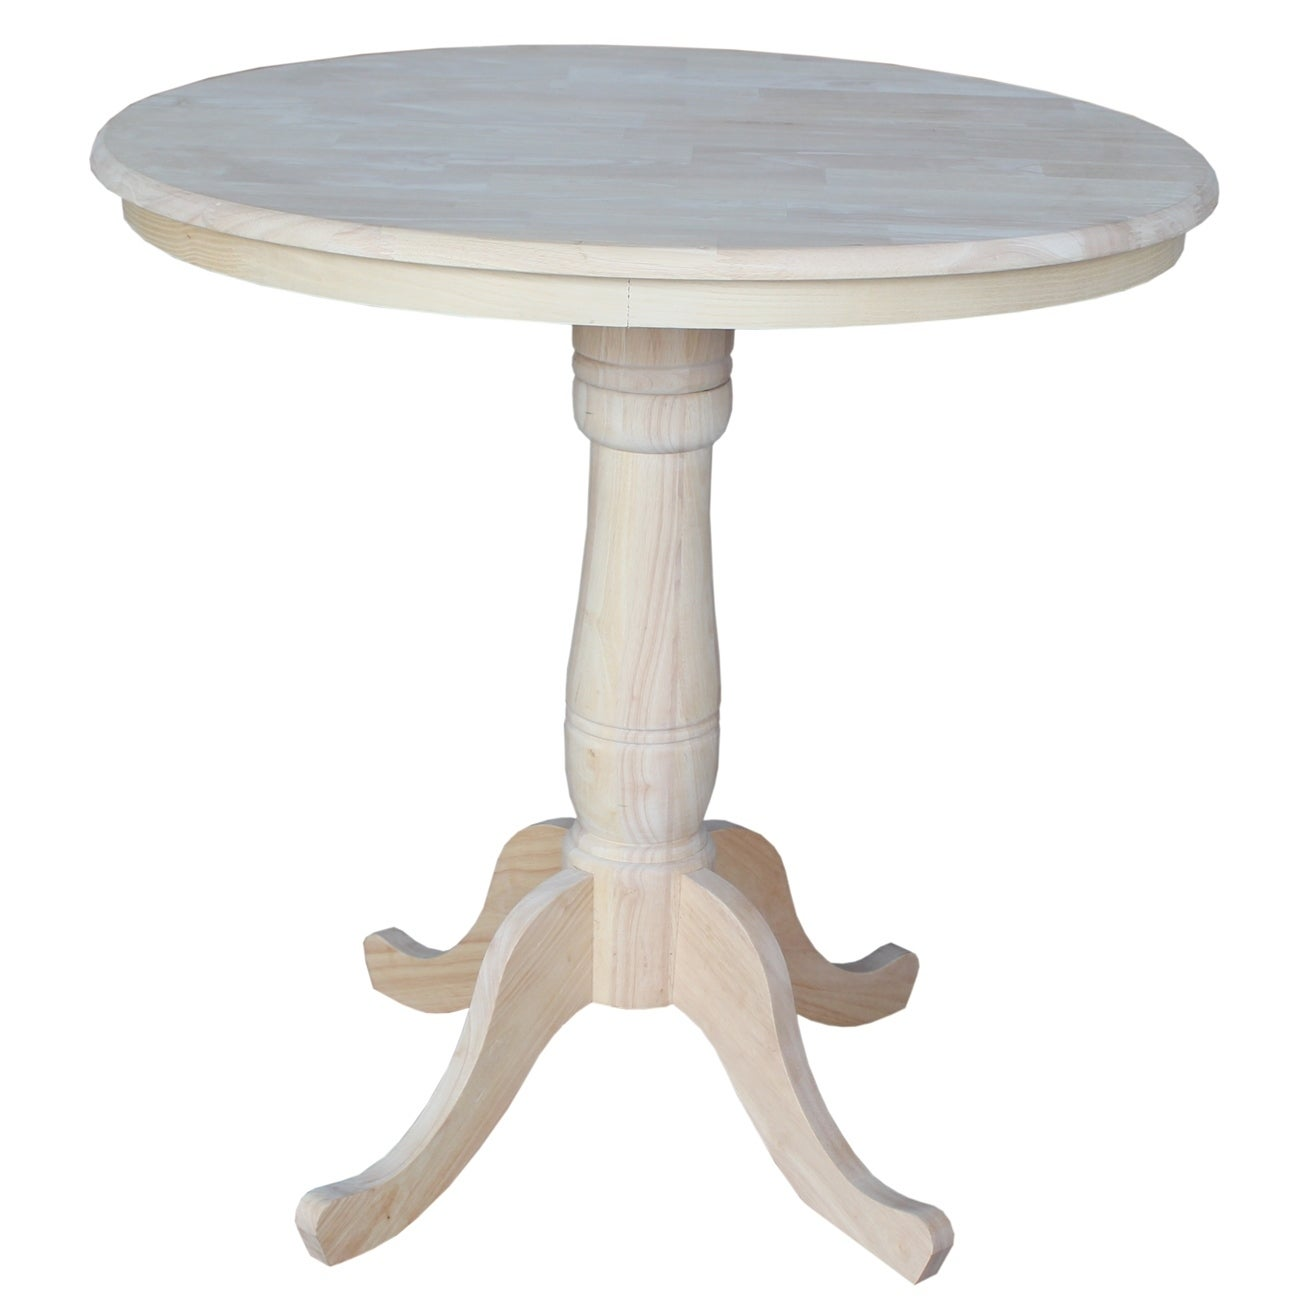 International Concepts Unfinished 36 Inch Round Counter Height Pedestal Table Free Shipping Today 9332751